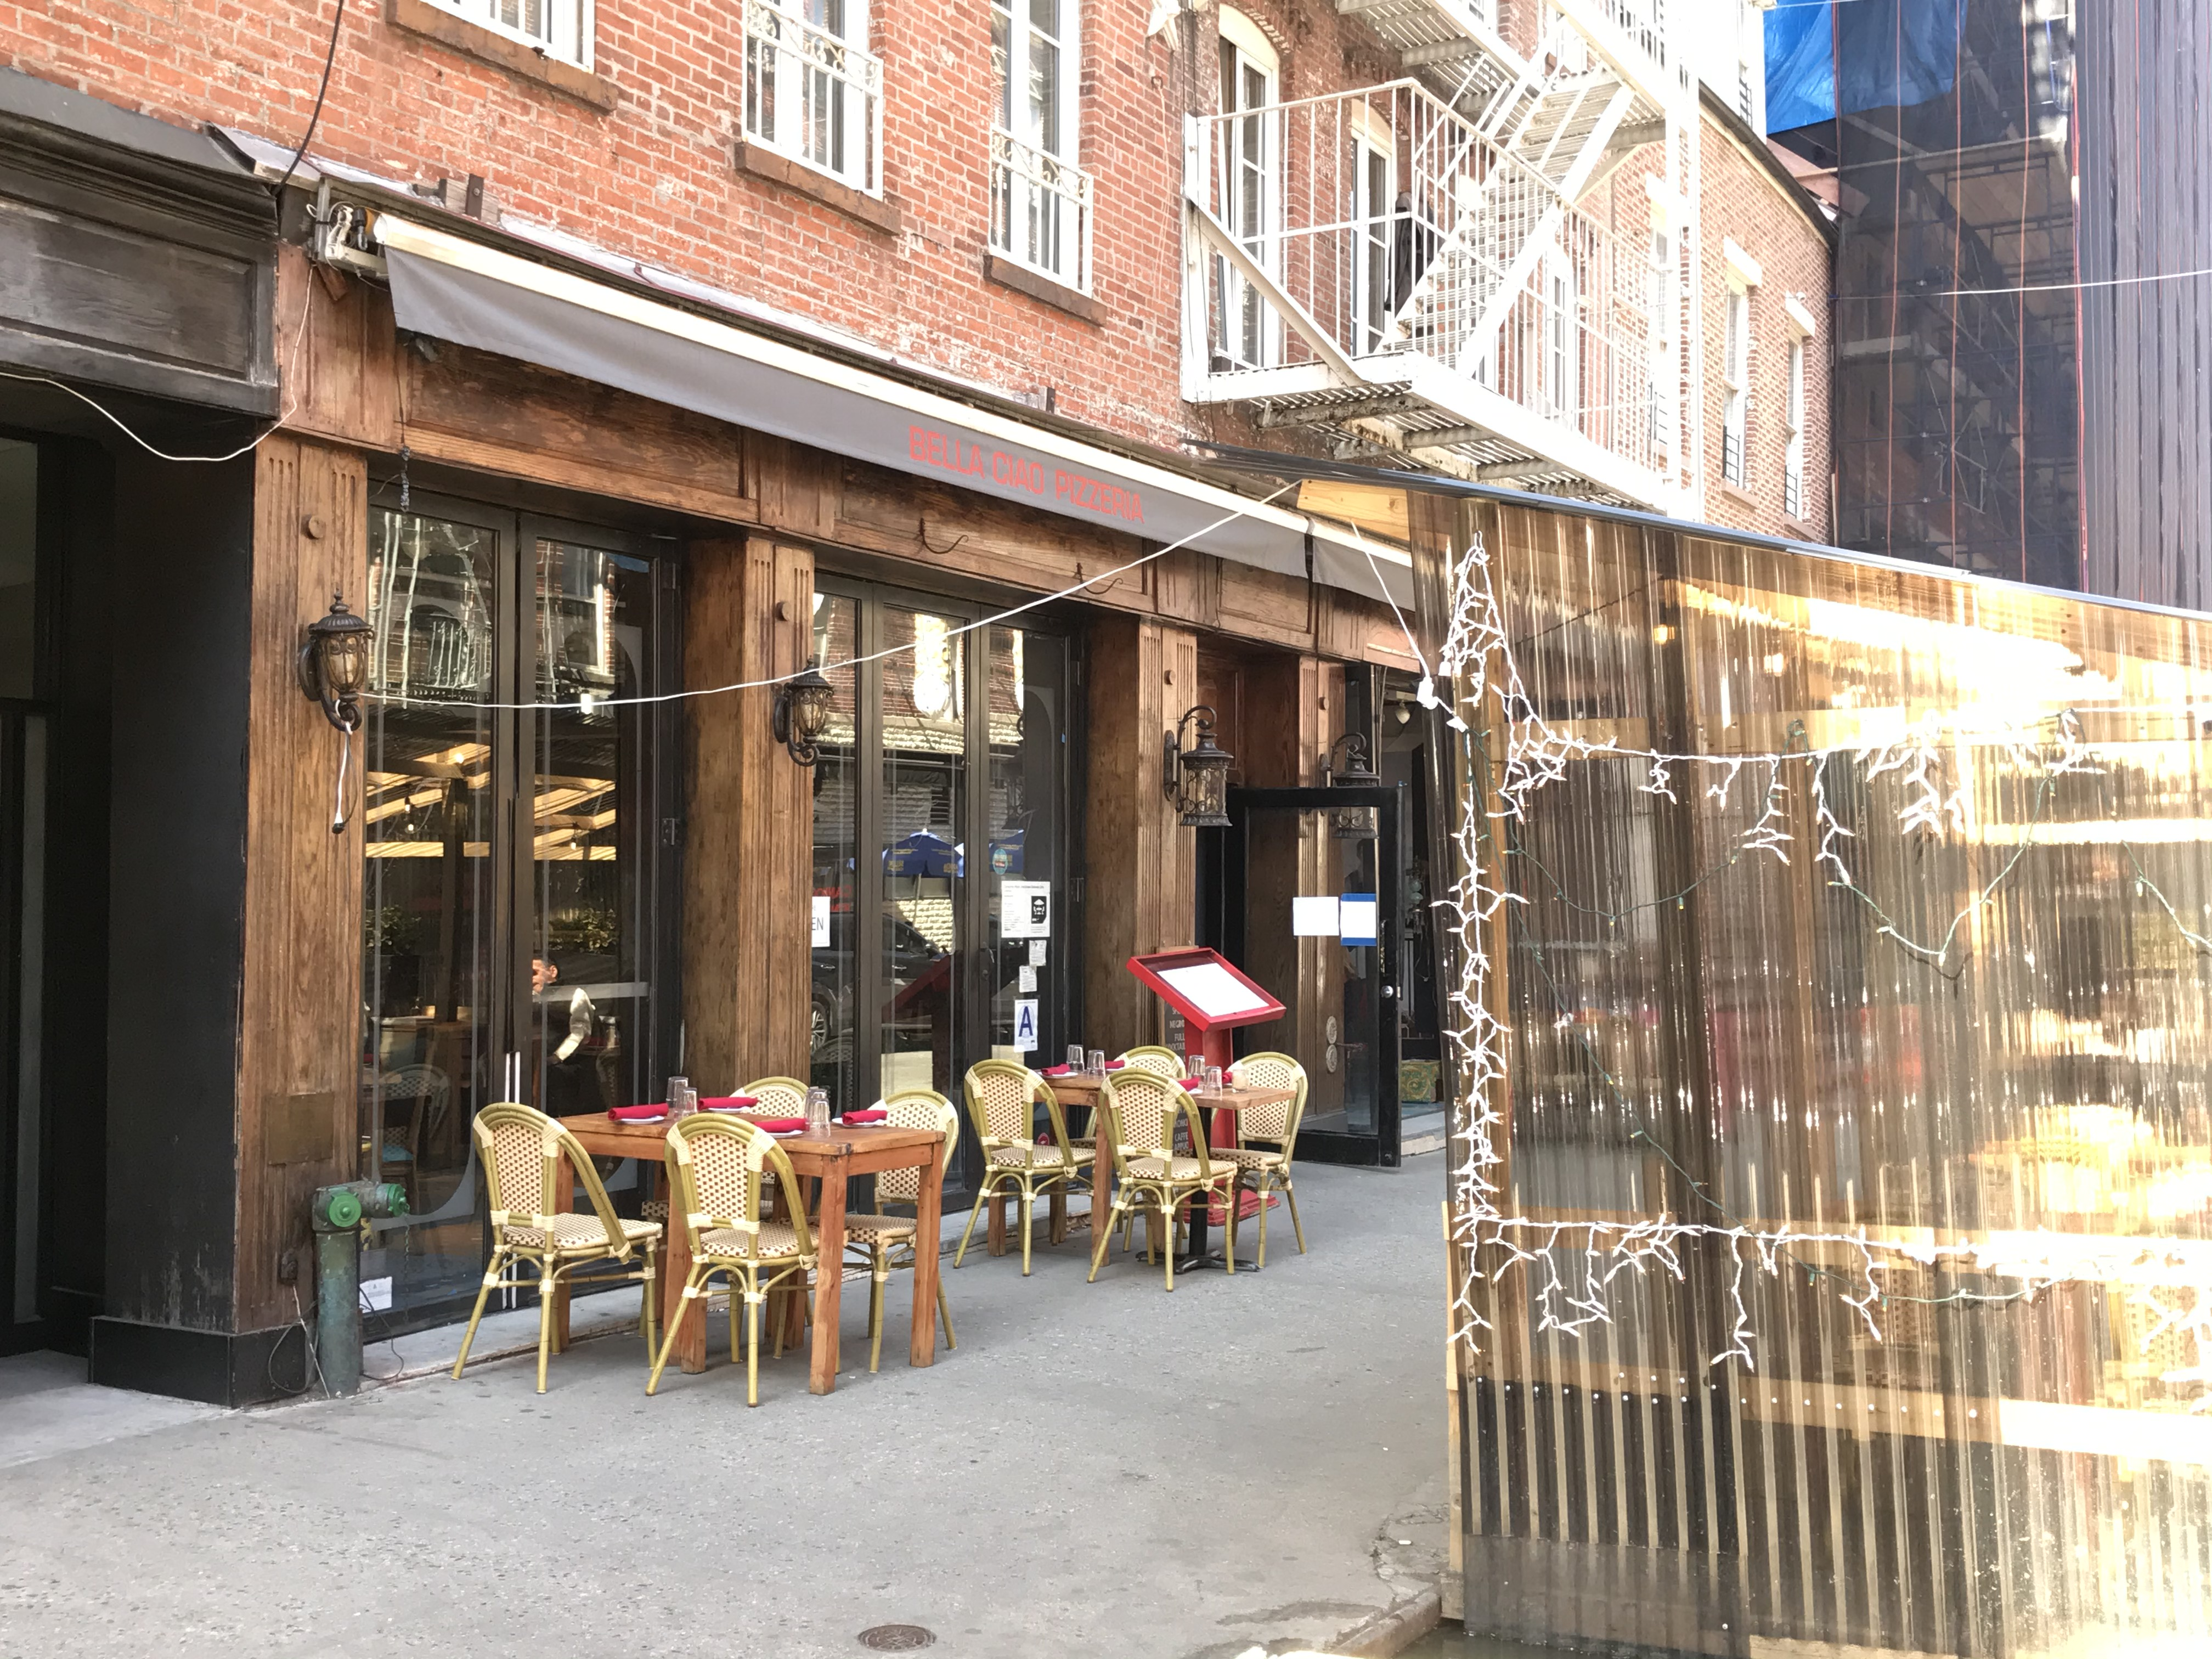 """A few wooden tables and an outdoor dining structure sit in front of a restaurant with an awning that reads """"Bella Ciao"""""""